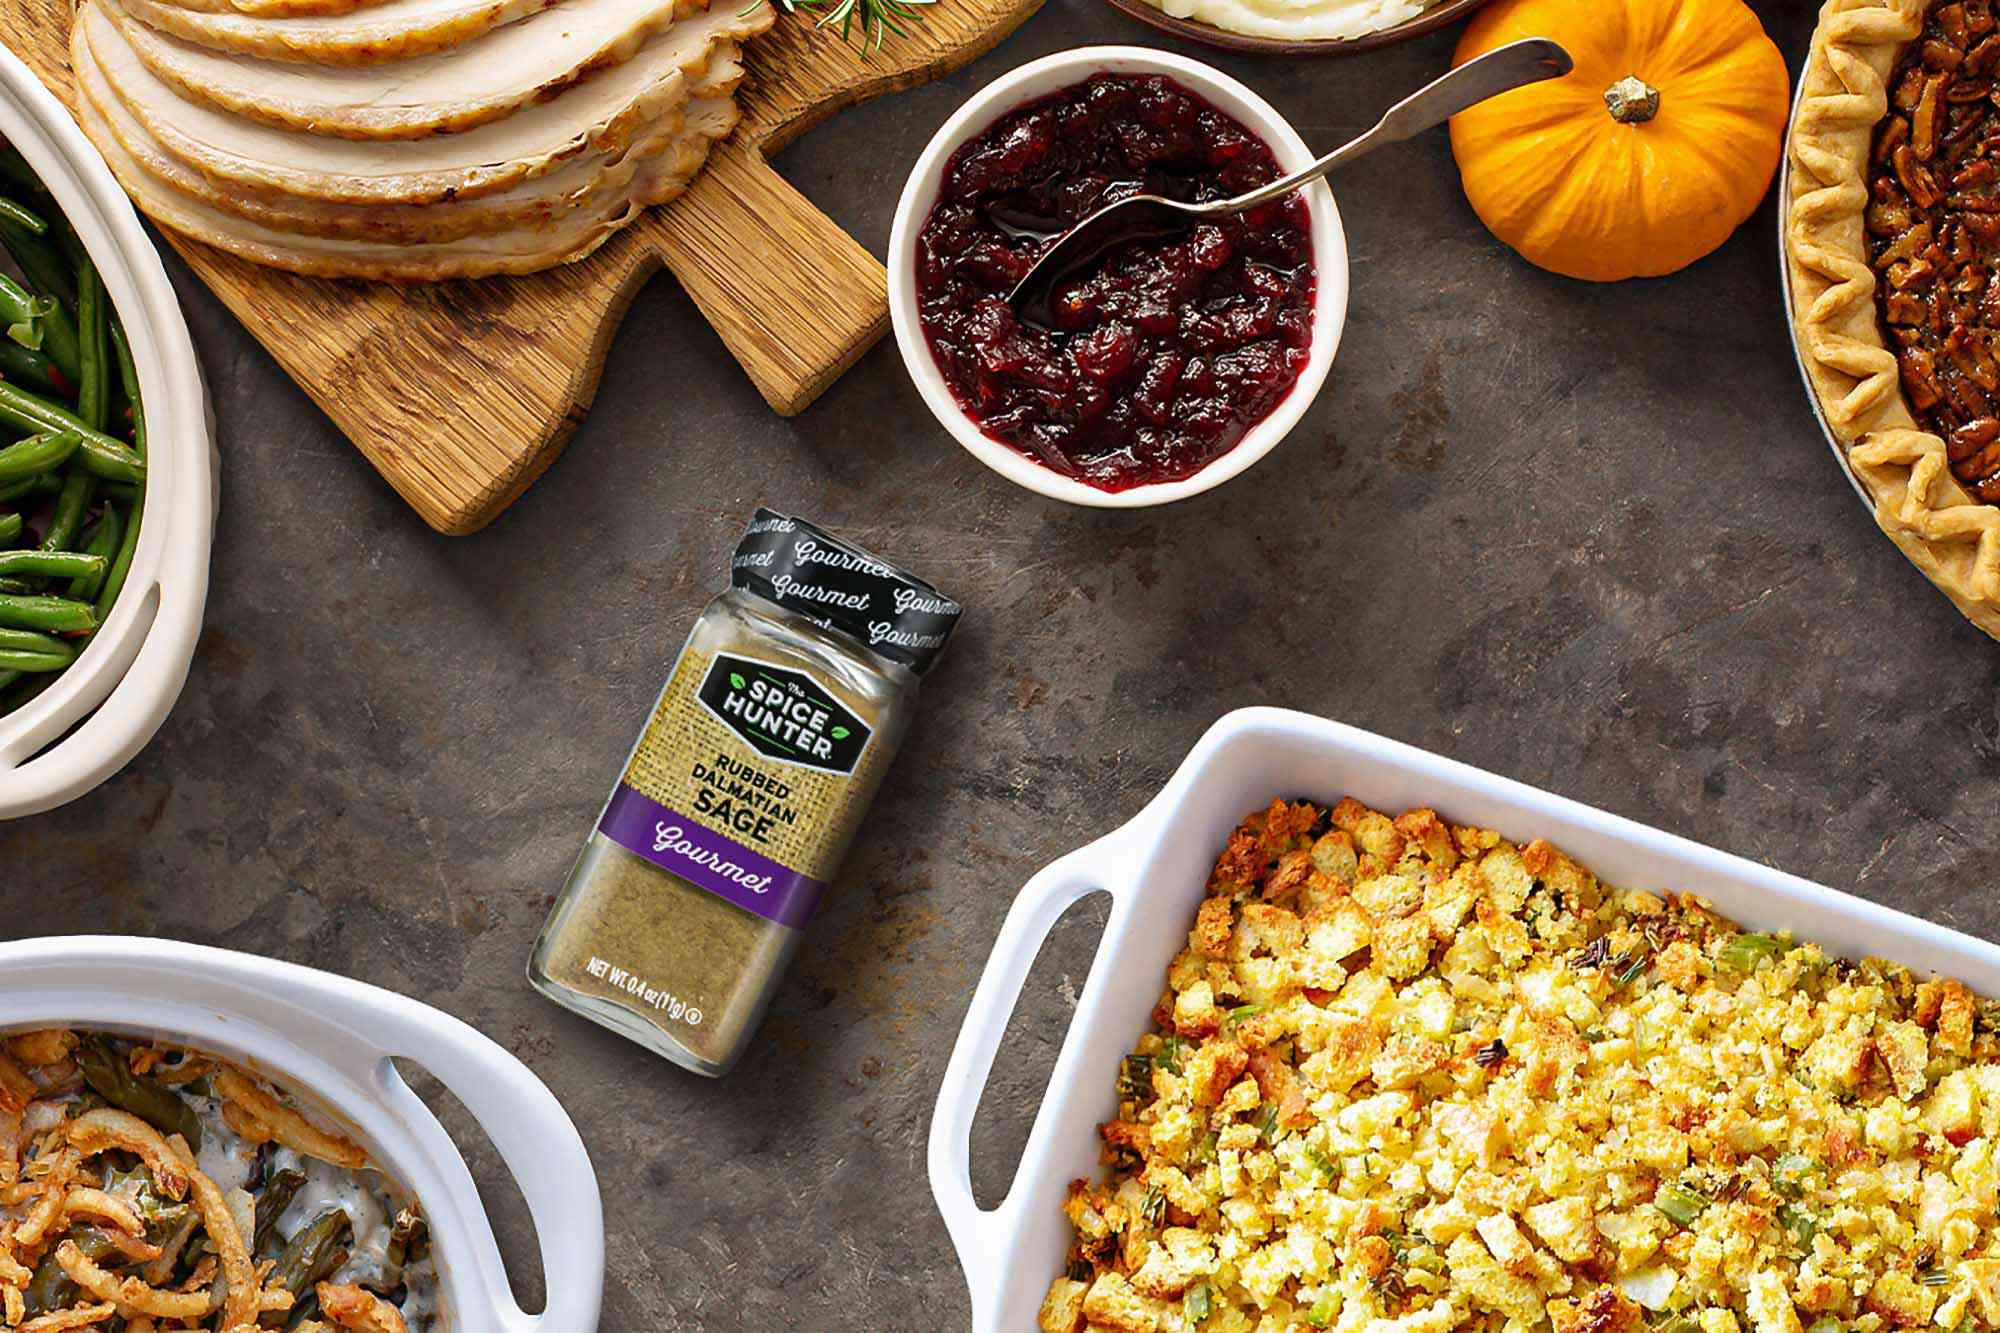 Spice Hunter Sage surrounded by classic Thanksgiving dishes